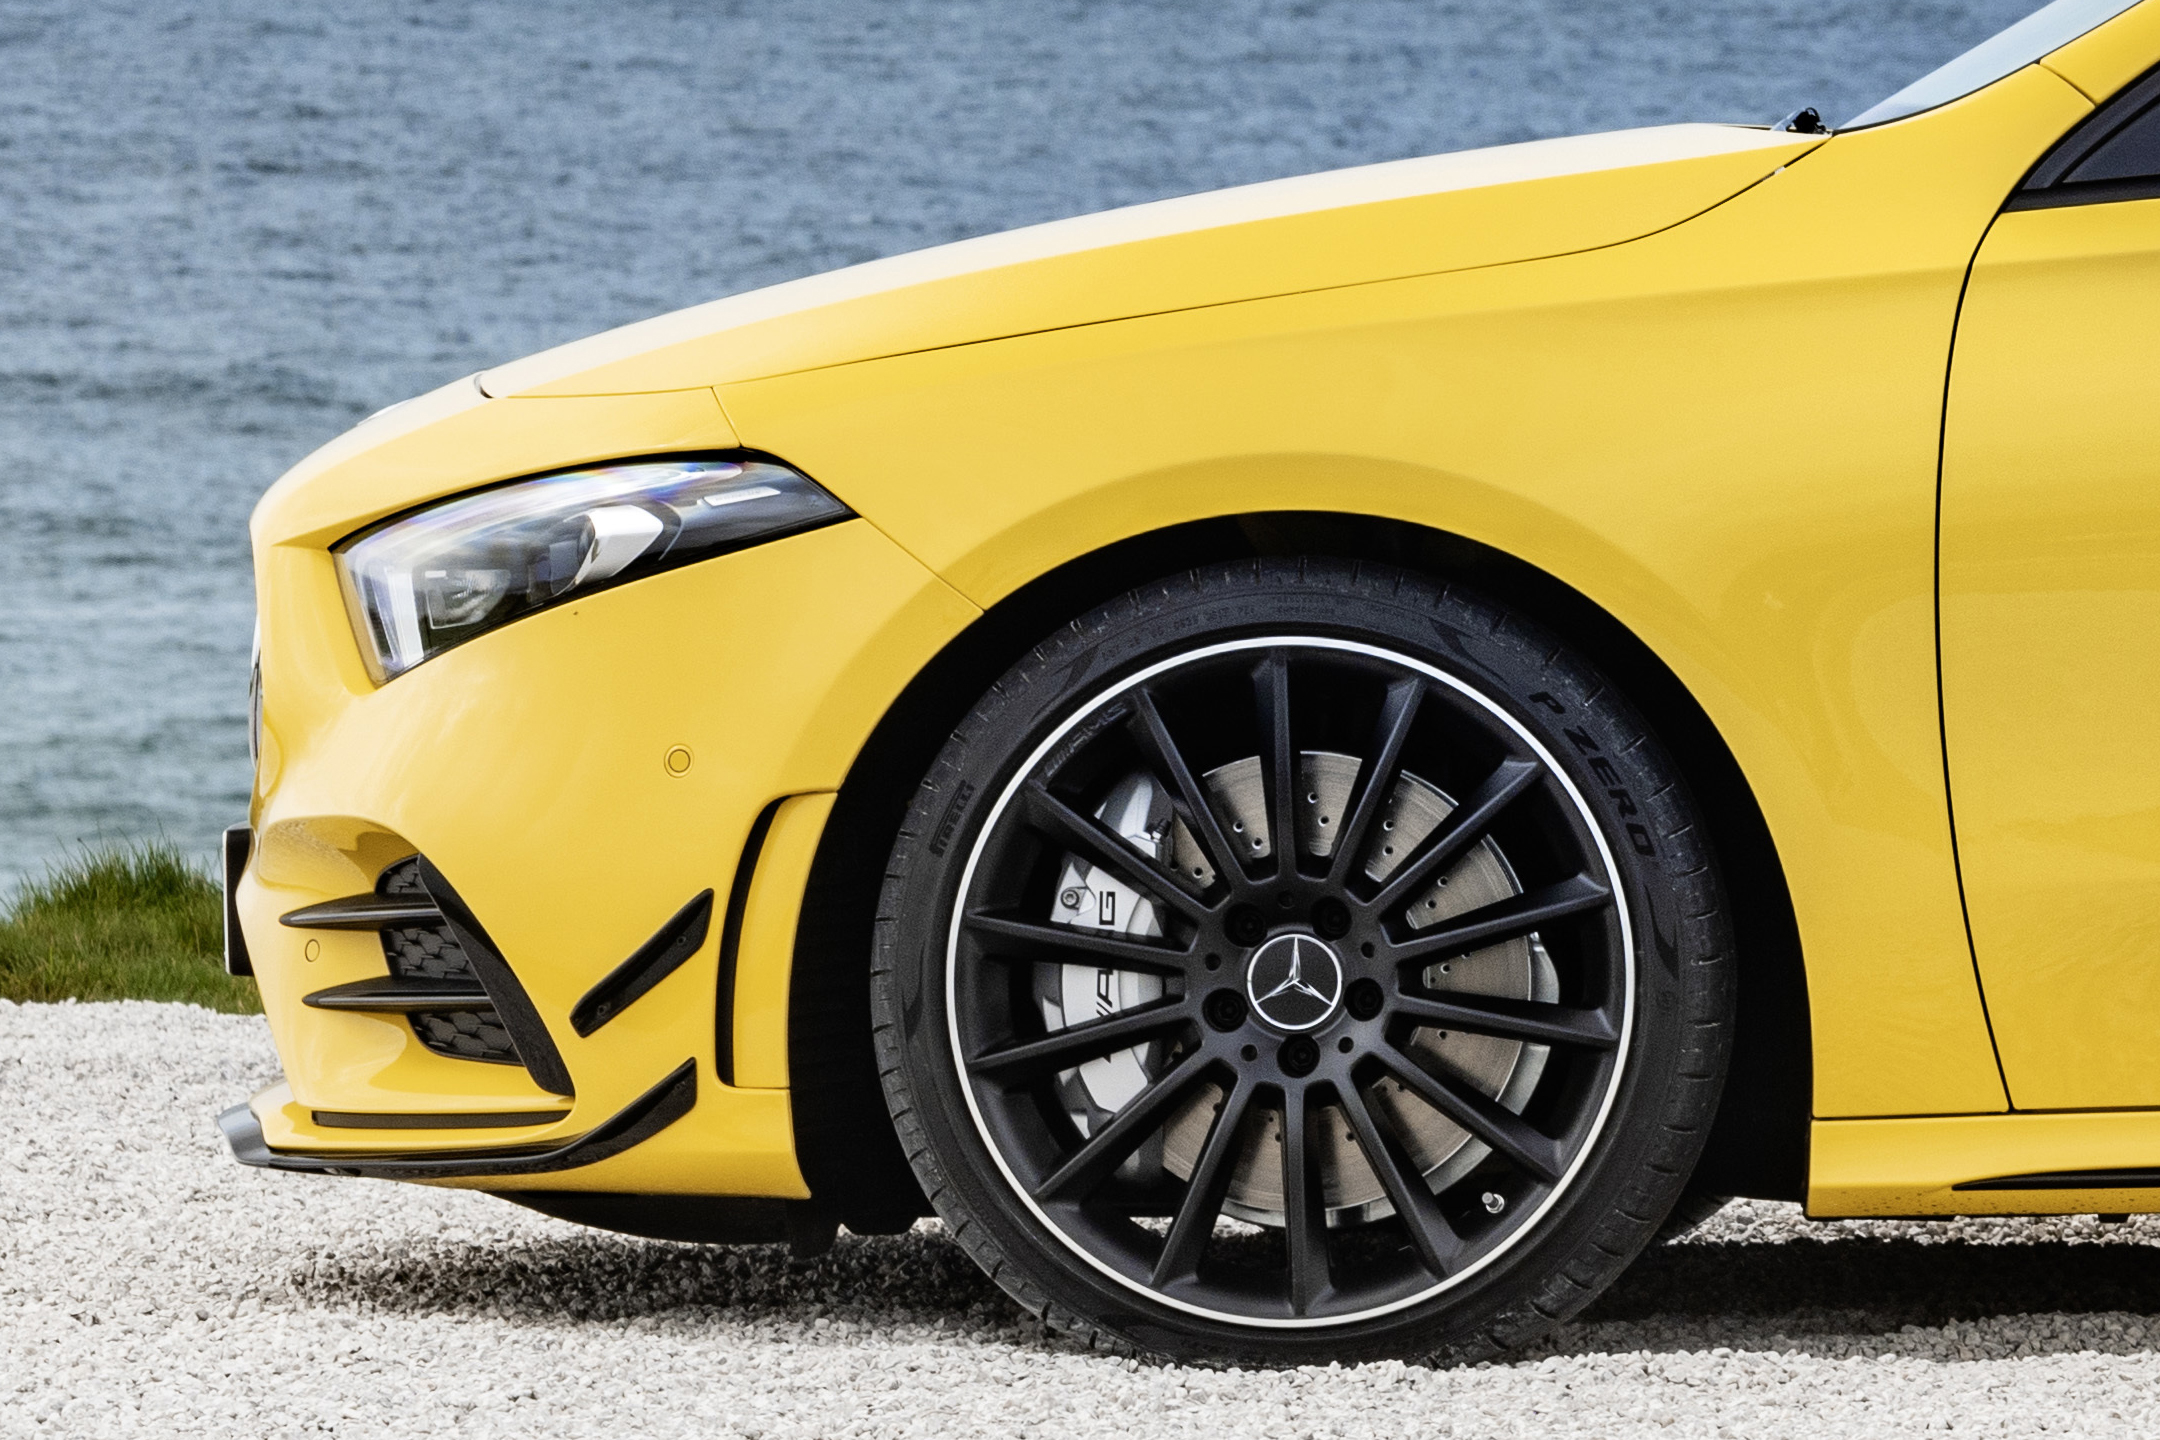 Mercedes-AMG A35 4MATIC - 2018 - front wheel / jante avant